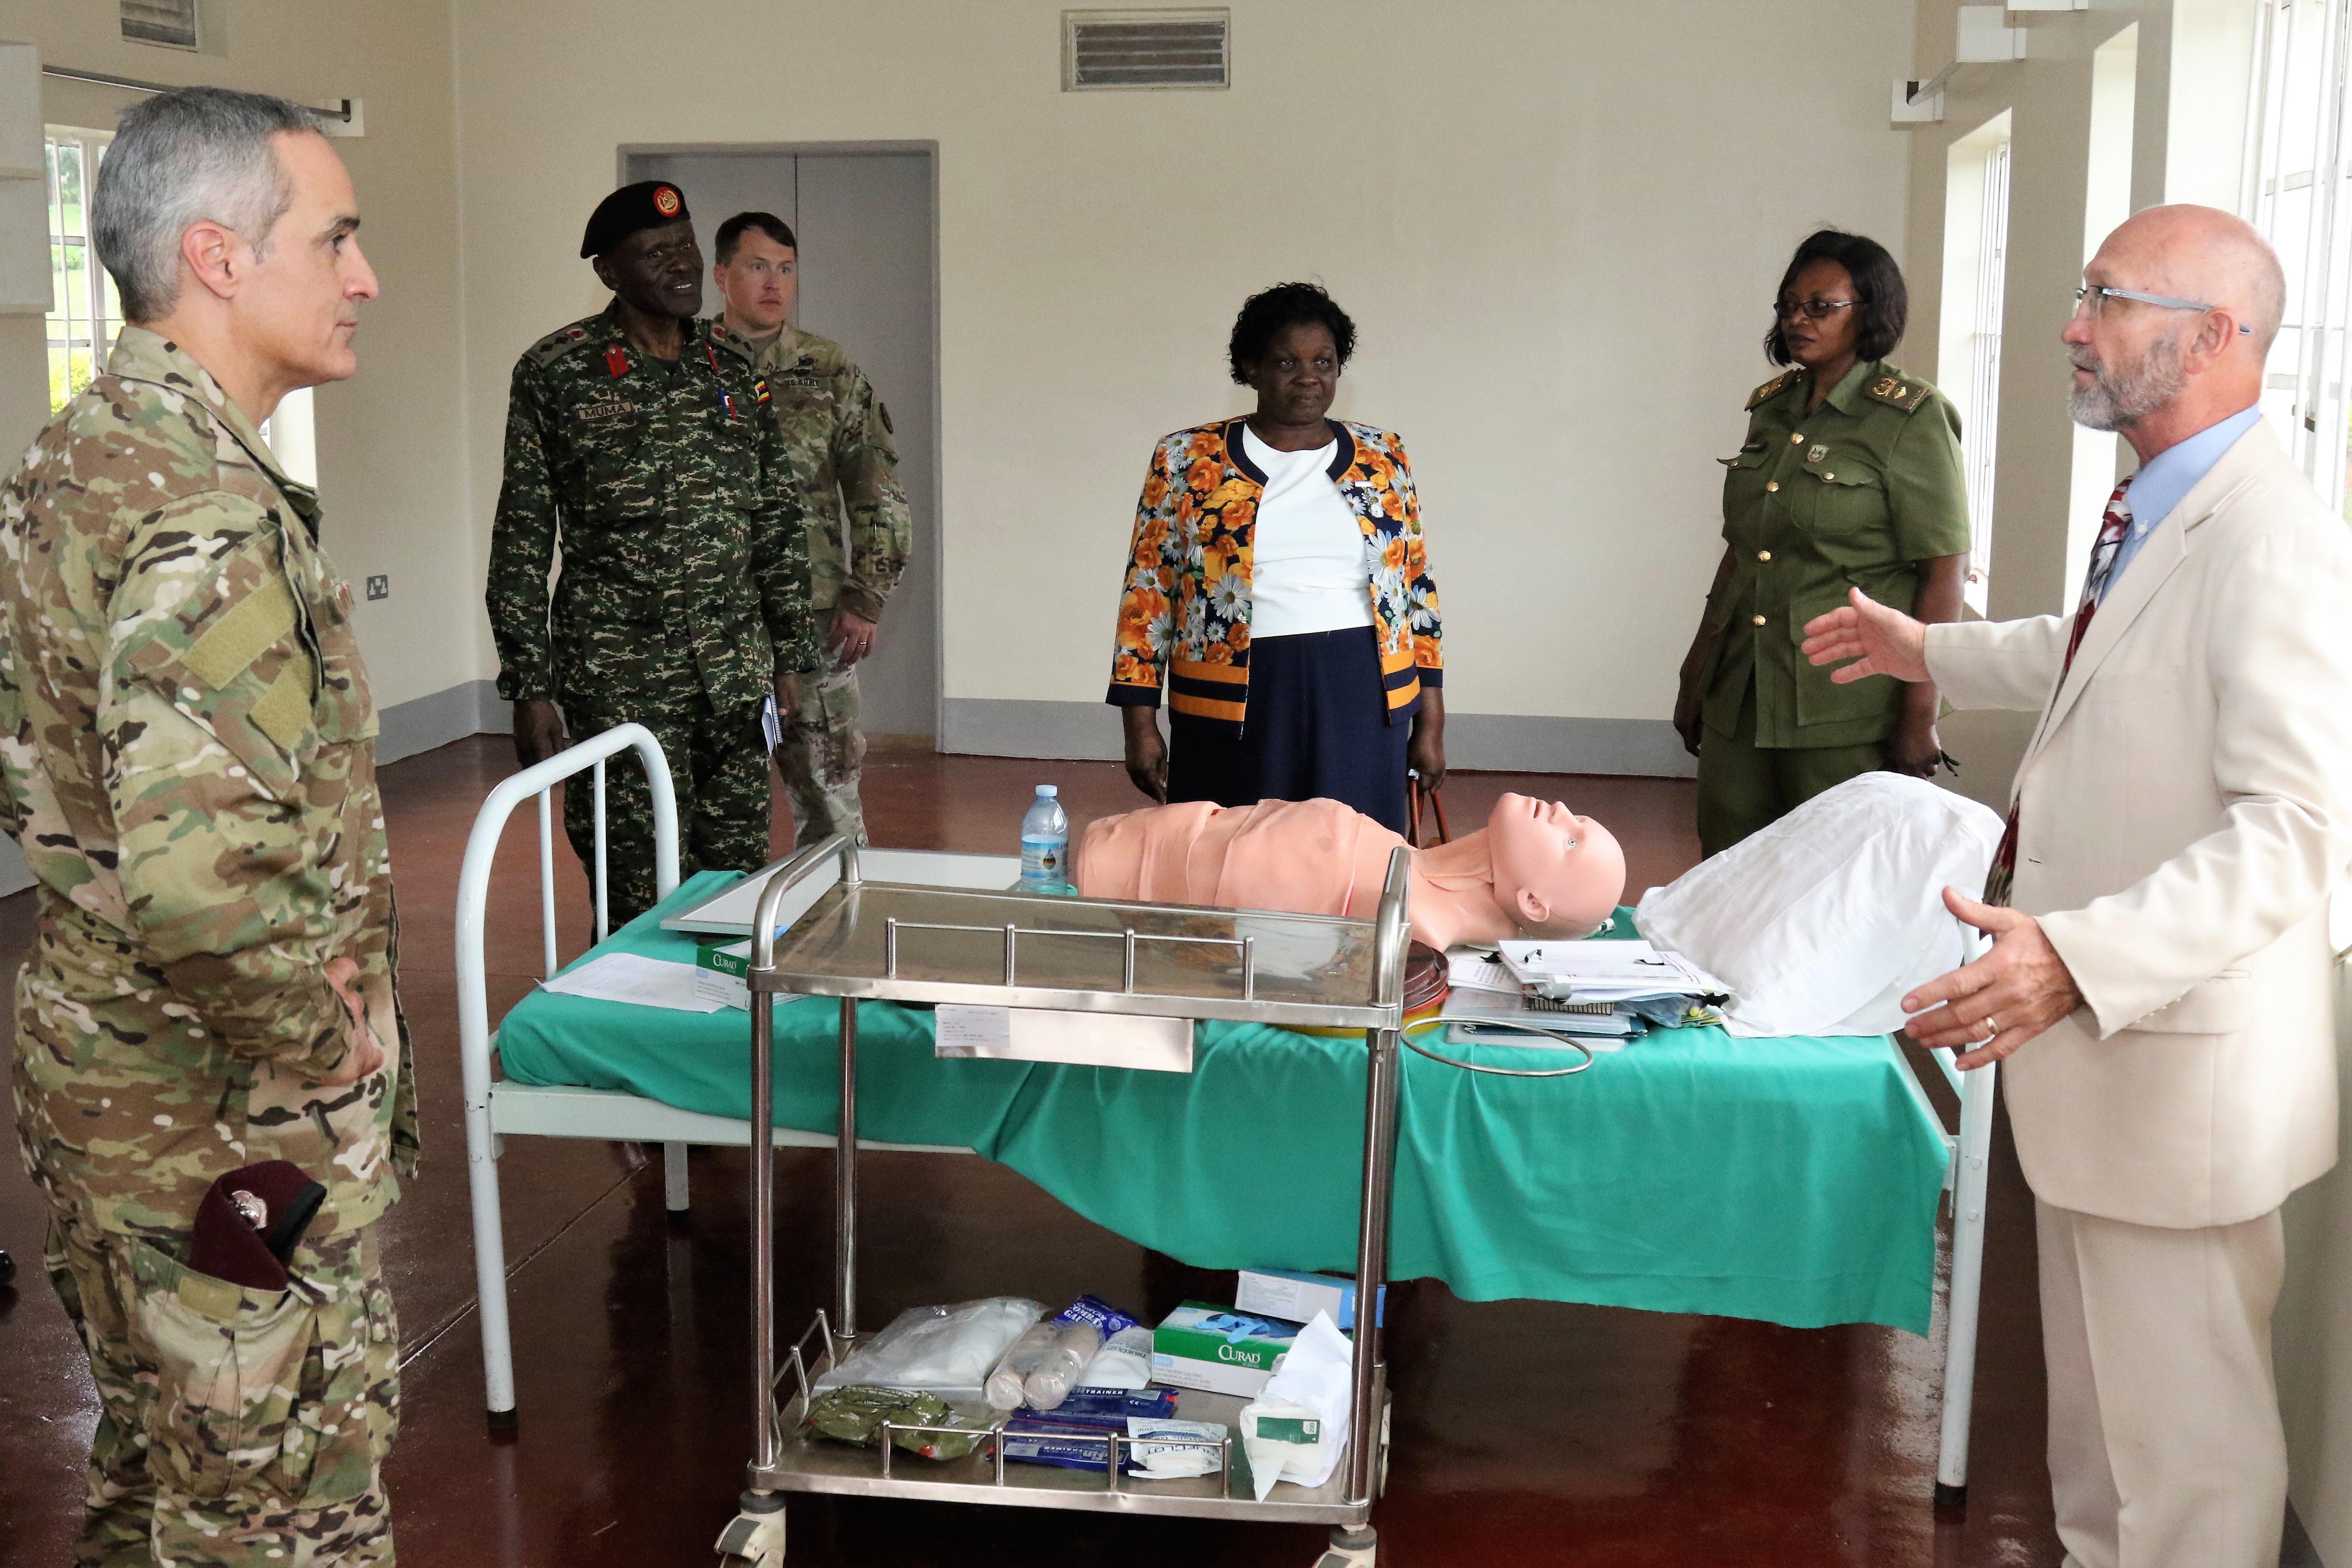 Dr. Charles Beadling, associate professor of military and emergency medicine at the Uniformed Services University of the Health Sciences, explains the uses of the newly renovated skills training lab Aug. 16, 2018 in Jinga, Uganda. The lab was recently renovated and allows Uganda Peoples' Defence Force soldiers to practice essential trauma nursing skills in a simulated environment.